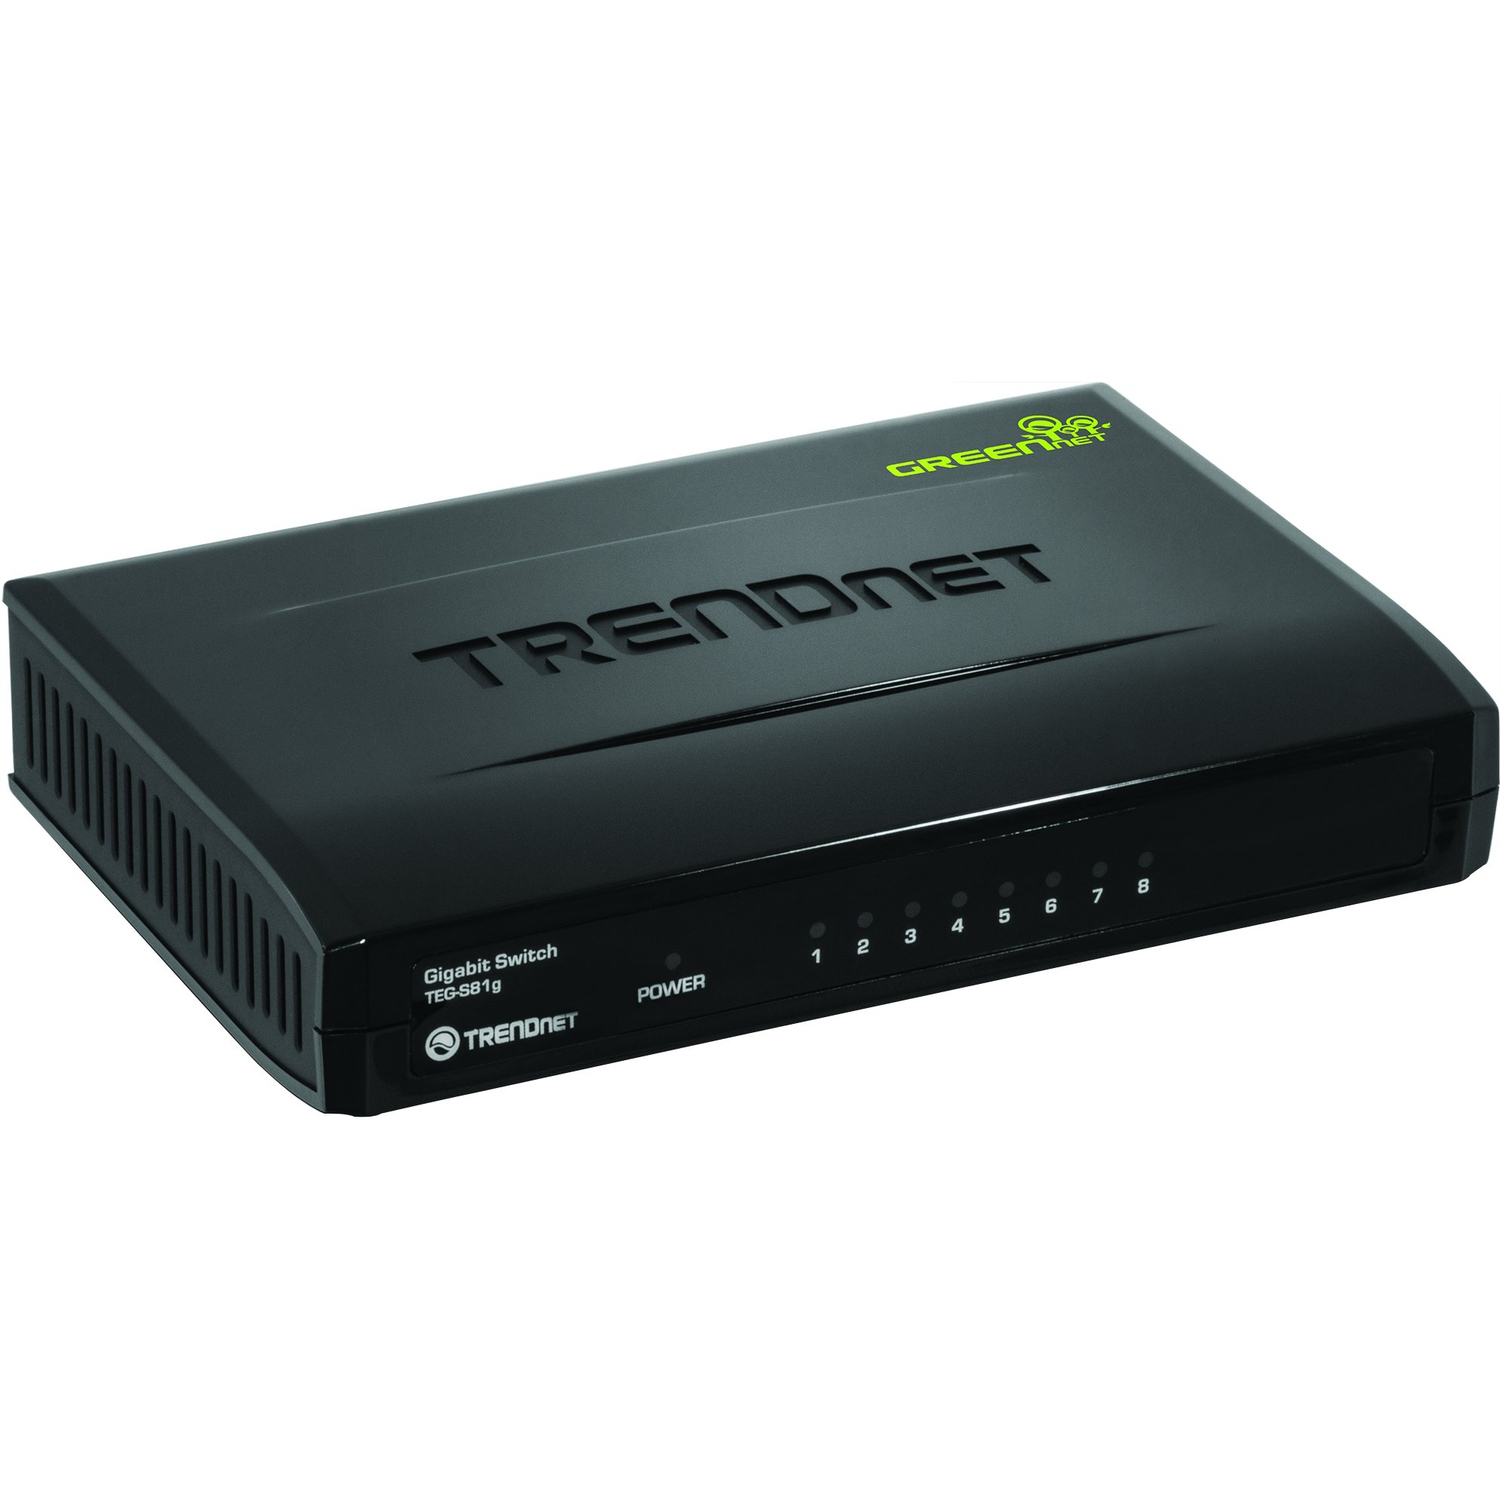 TRENDnet TEG-S81G 8 Ports Ethernet Switch